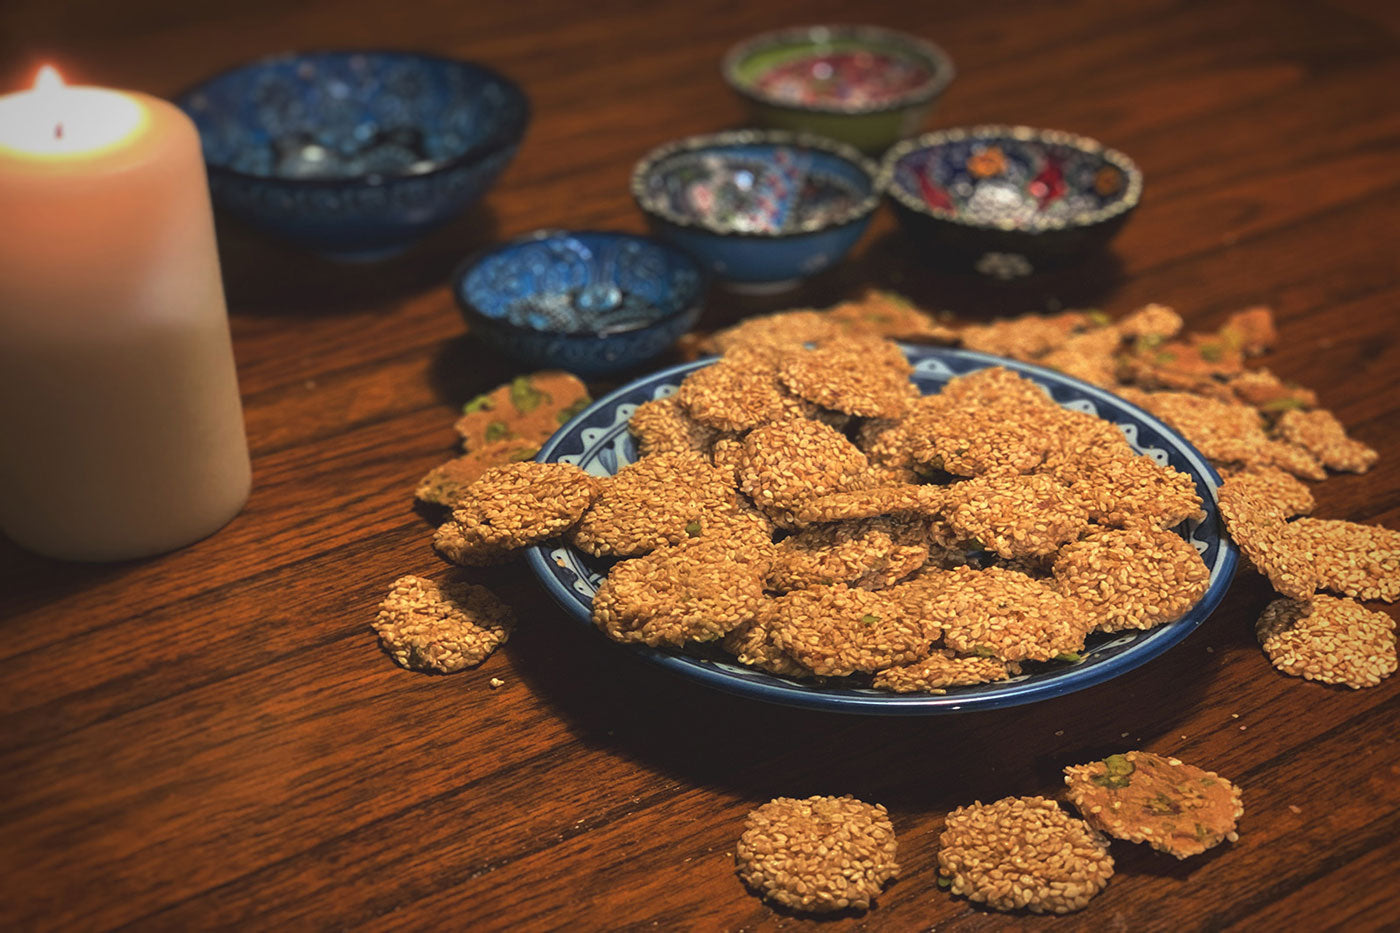 Baraze biscuits from the Middle East on a plate on a dining room table